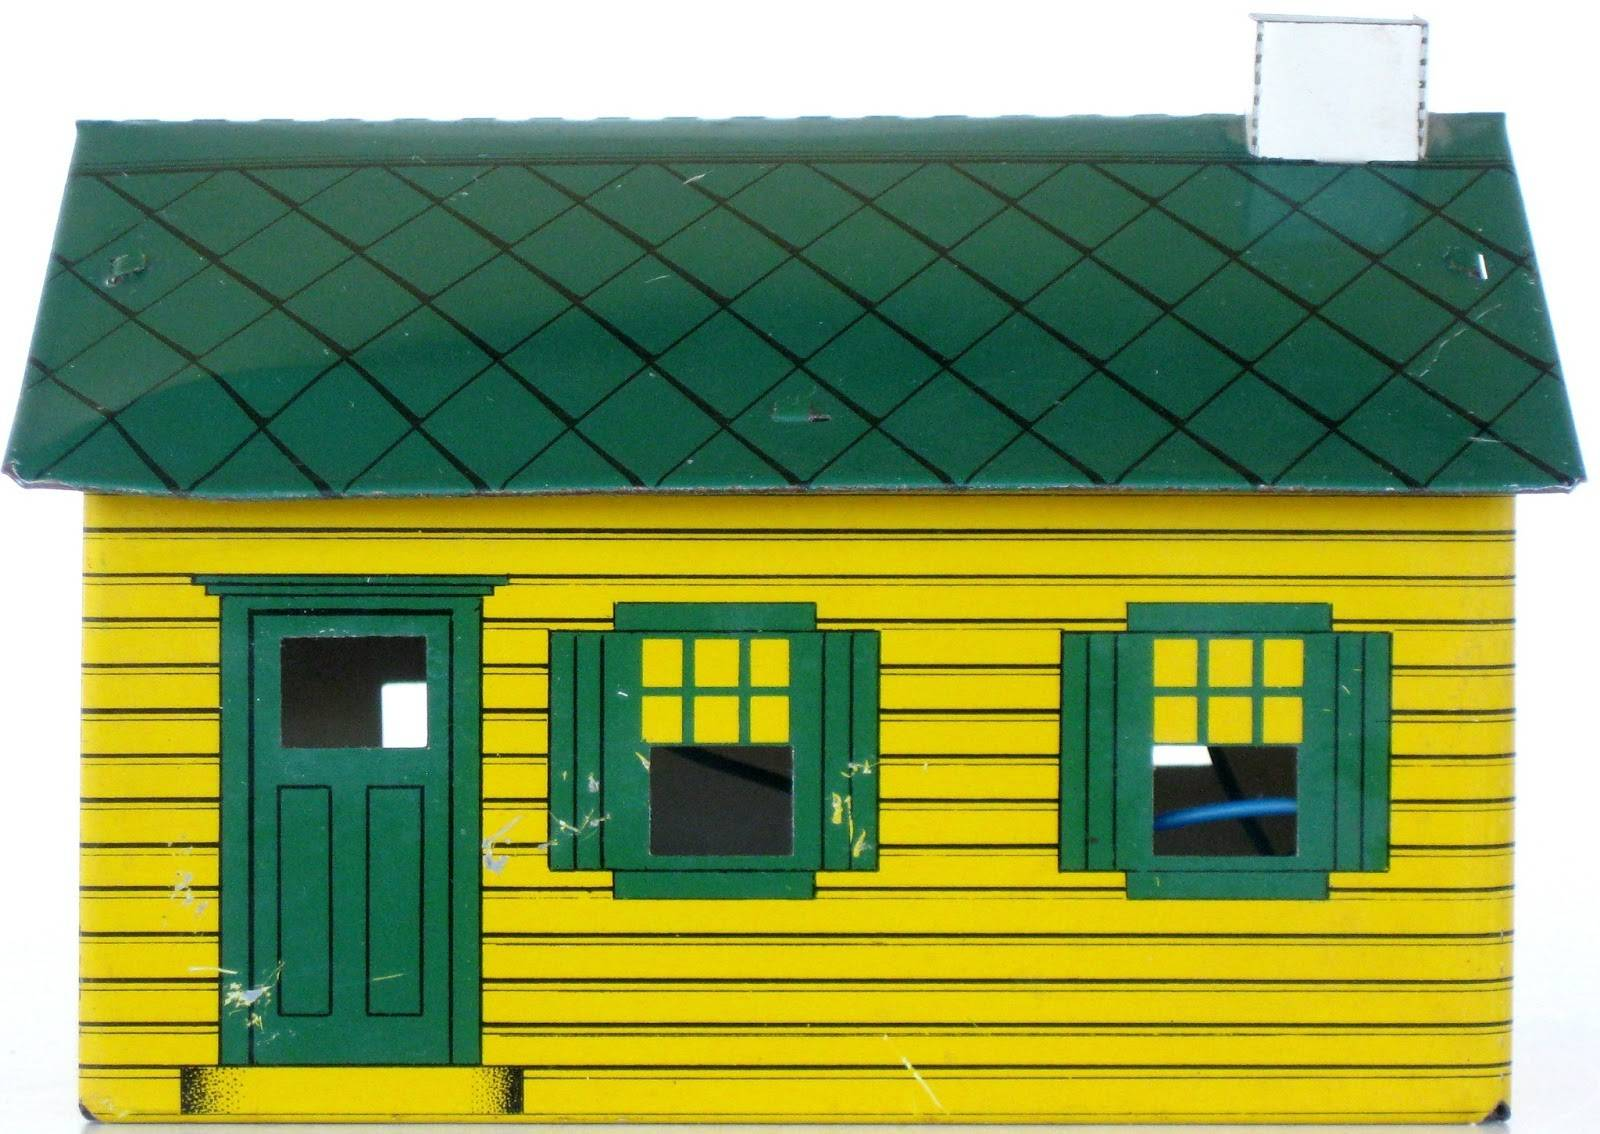 Stuff Sales Model Hilltop House Yellow Green Roof